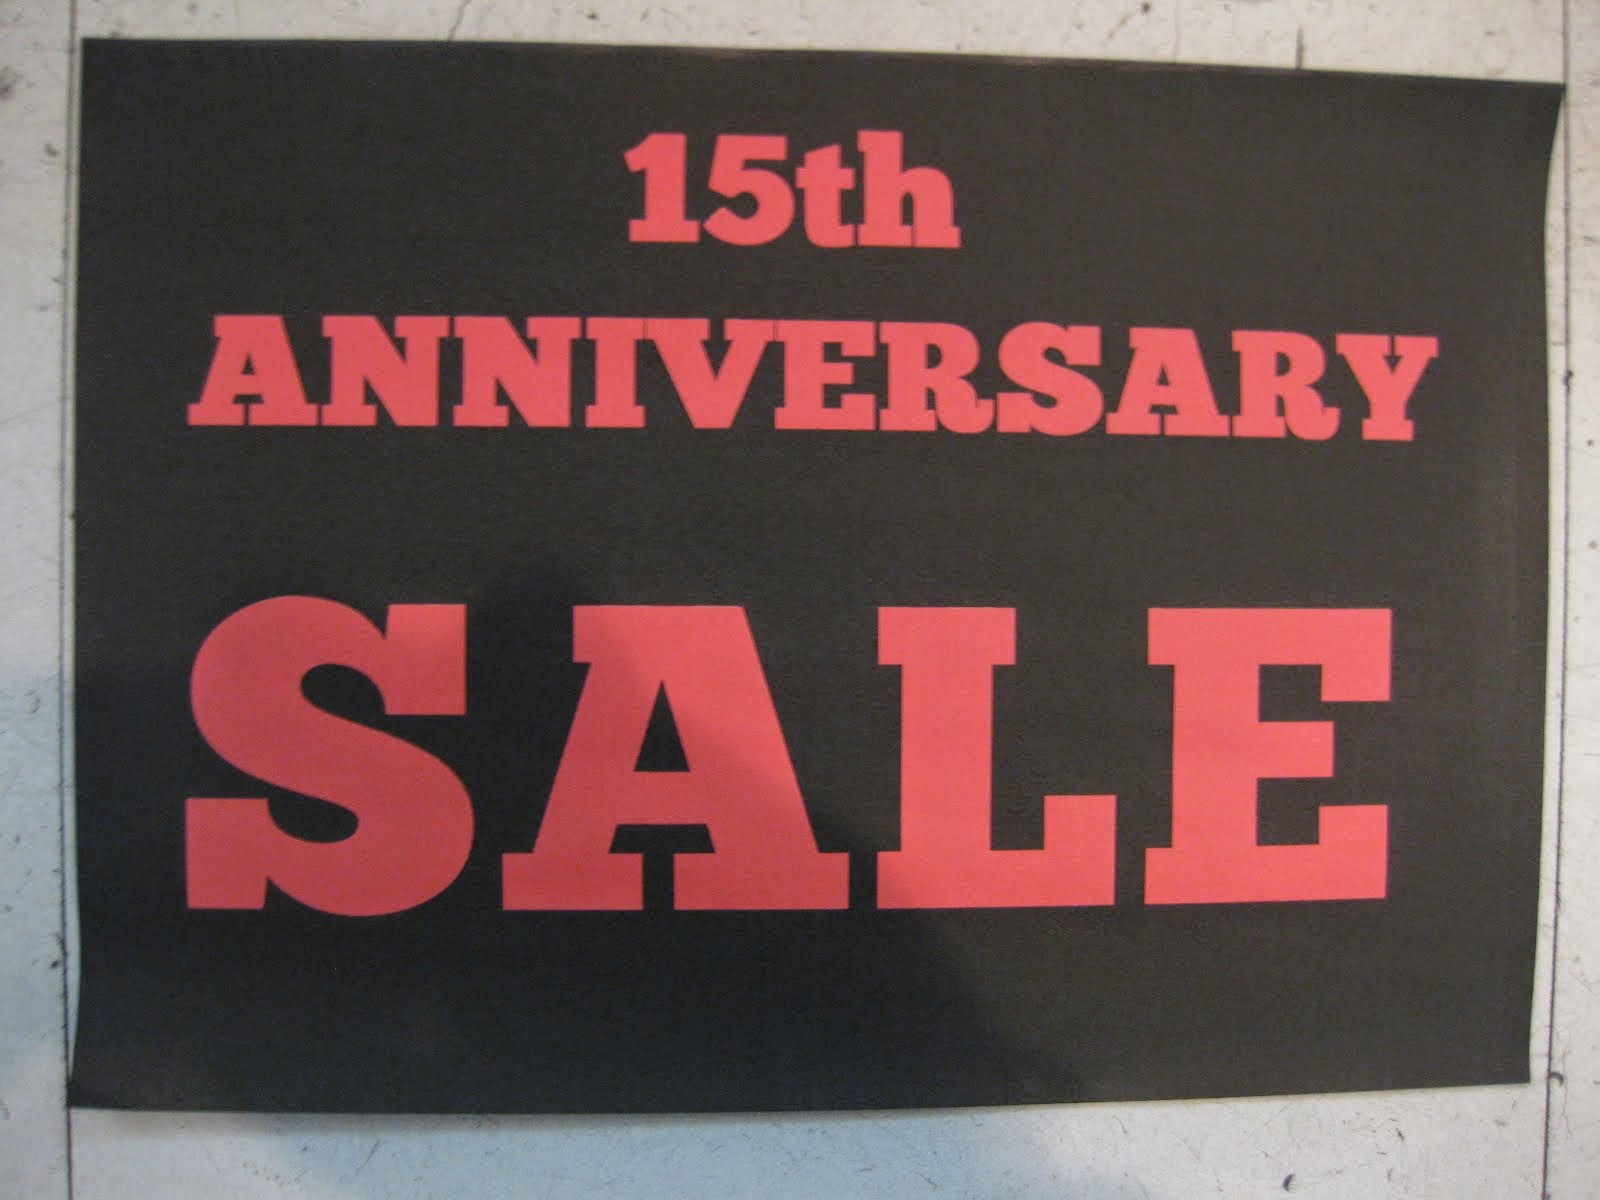 15th ANNIVERSARY SALE